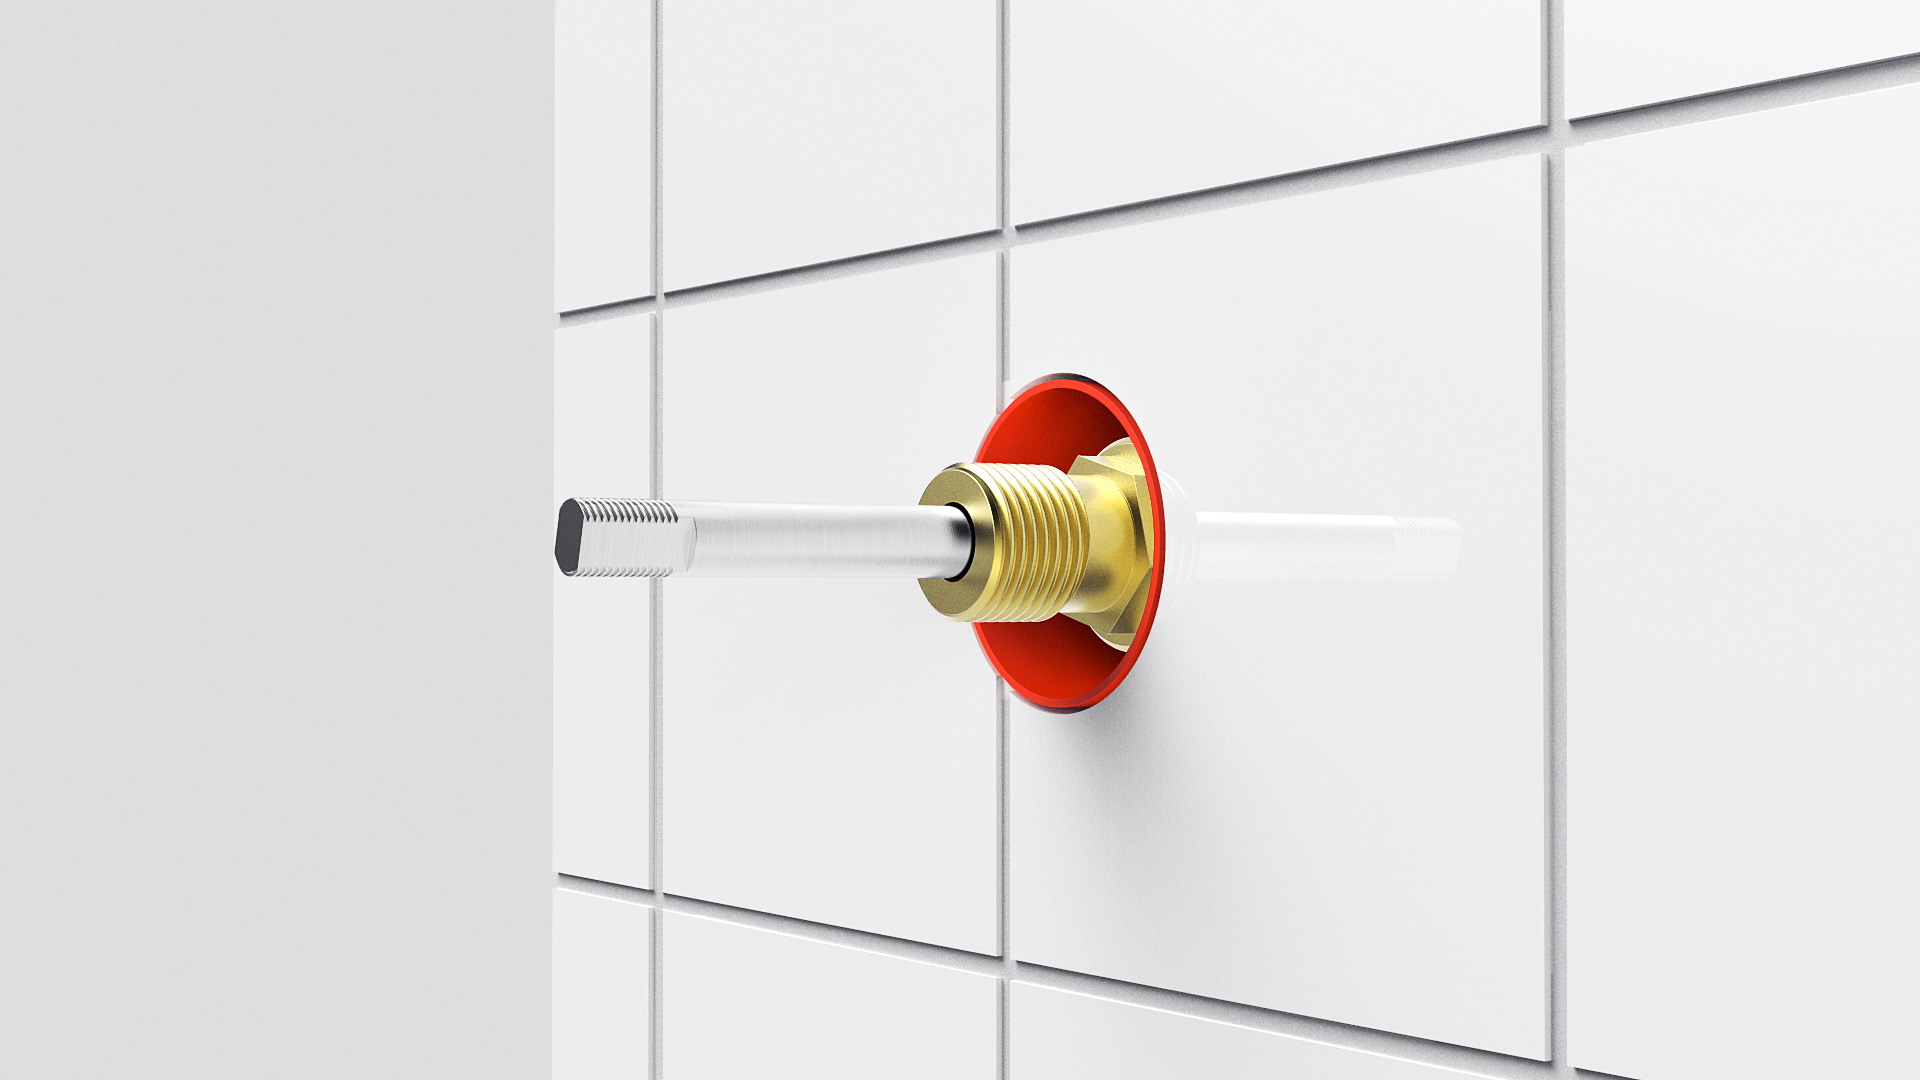 6. Sealing sleeve is trimmed flush with tiles. - Install new spindle valve.